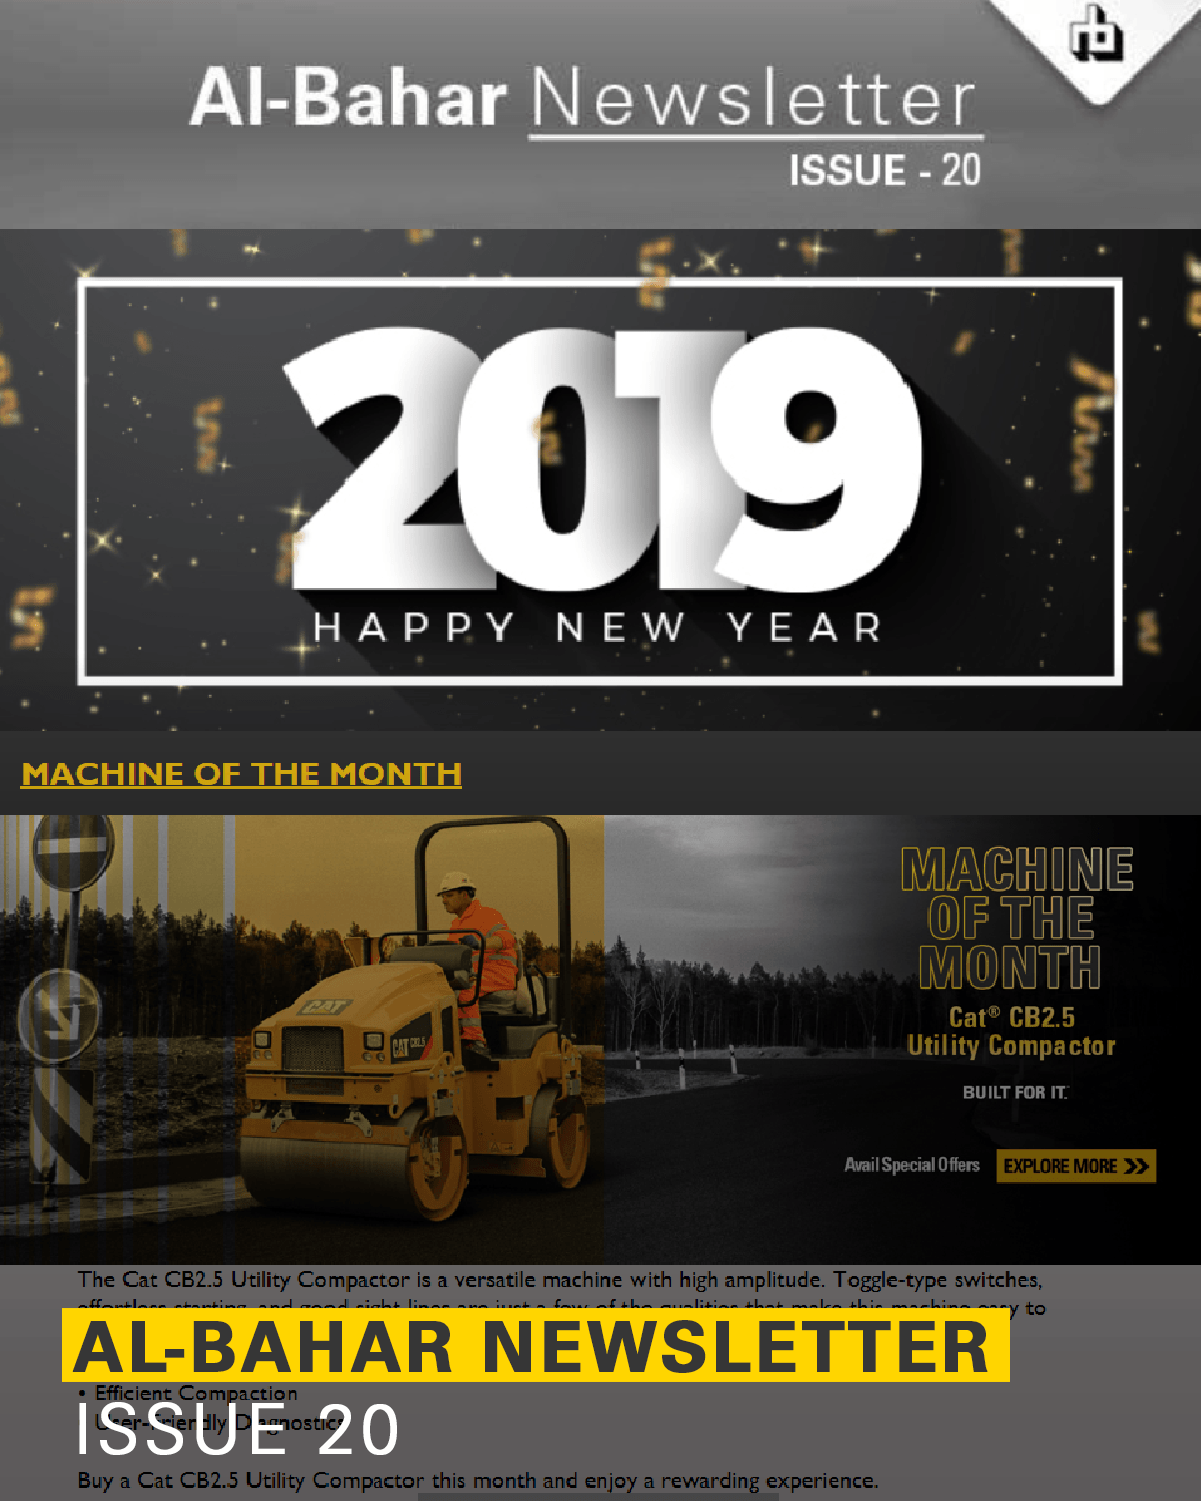 al-bahar-2018-newsletter-issue-20